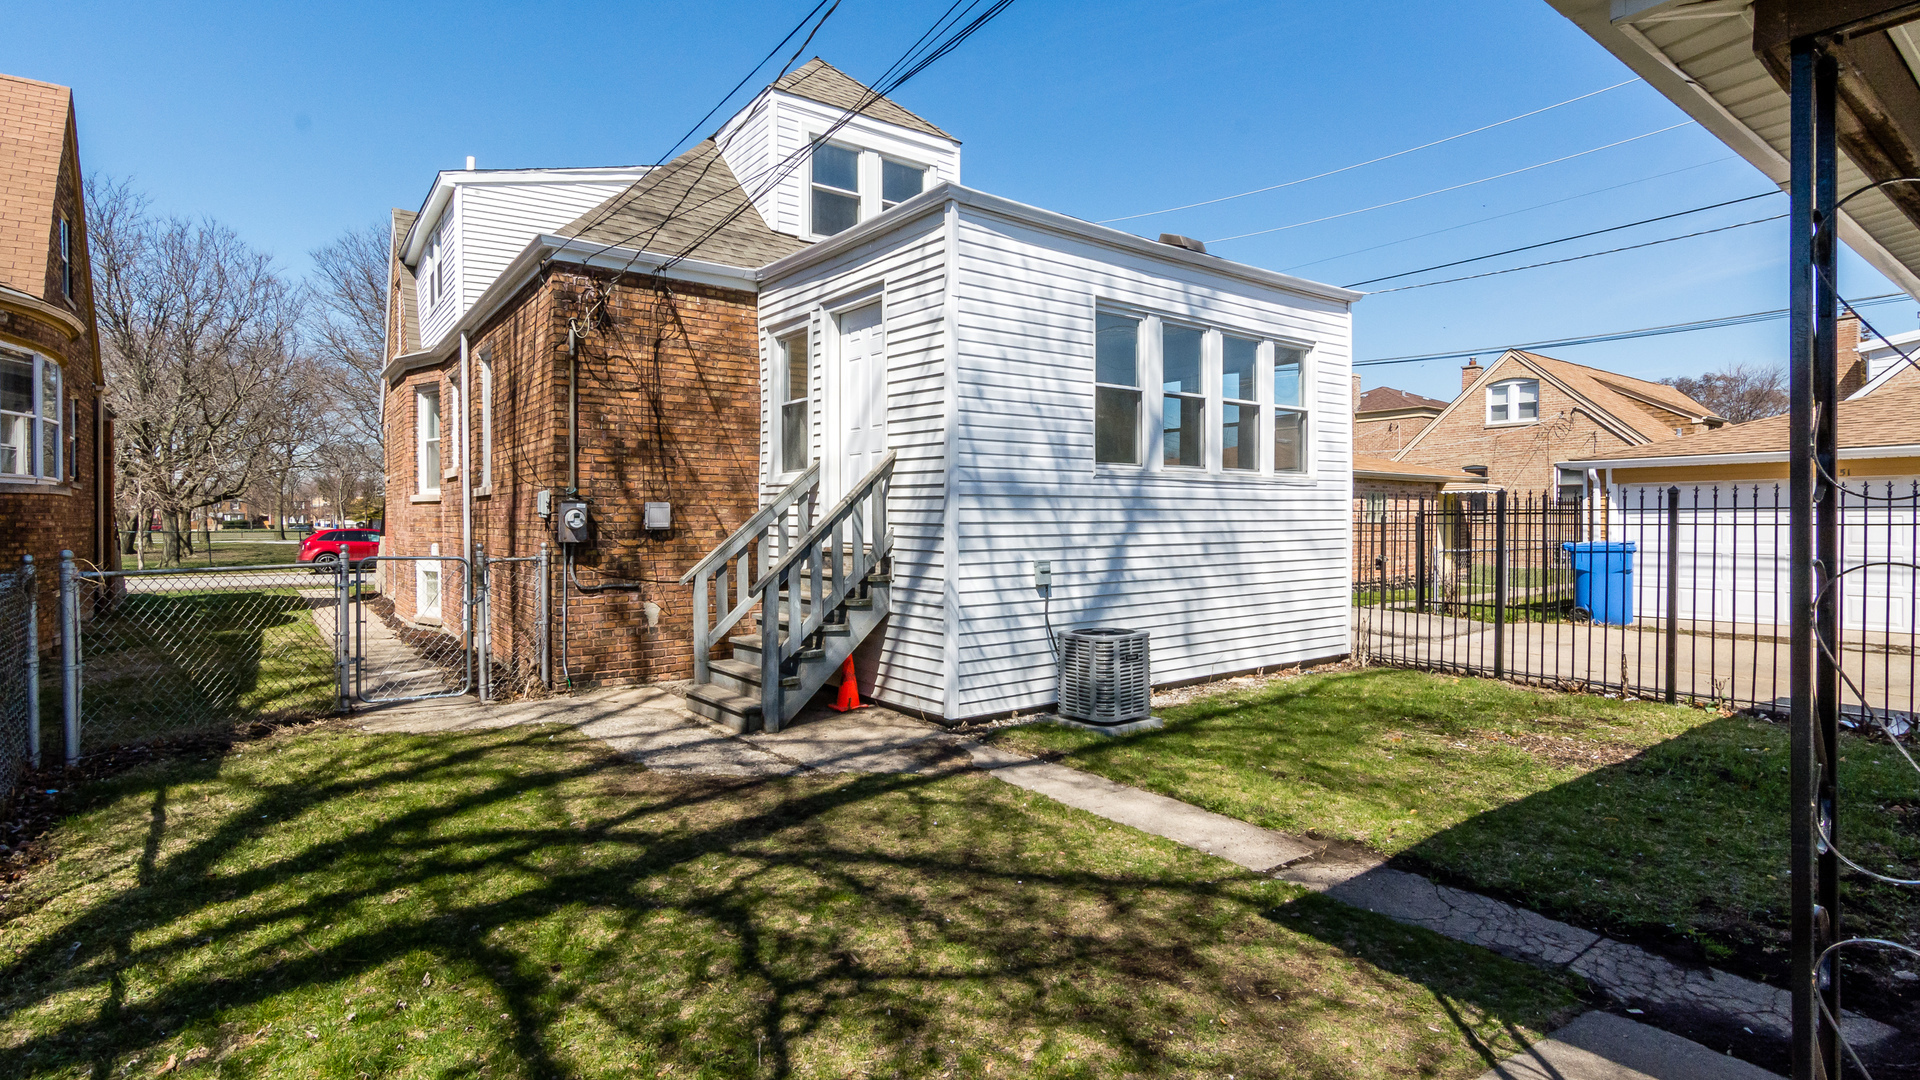 8315 SOUTH WOOD STREET, CHICAGO, IL 60620  Photo